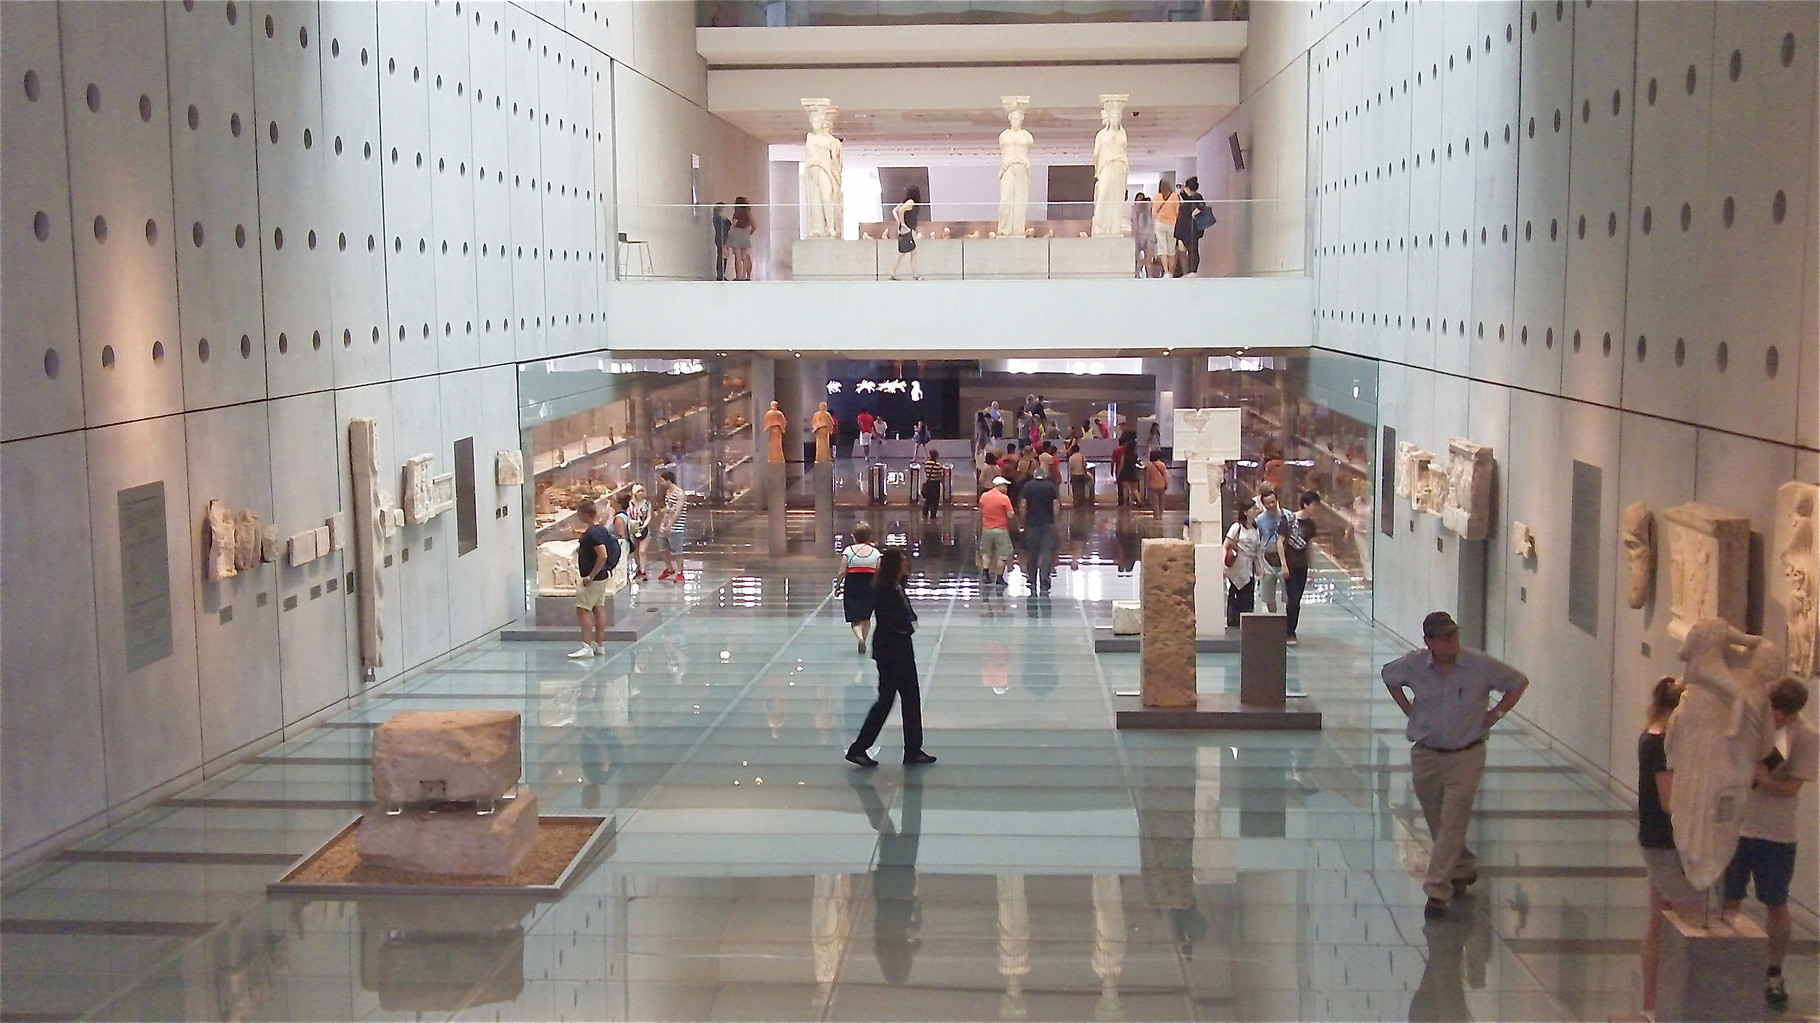 The Acropolis Museum, Athens, John to the right